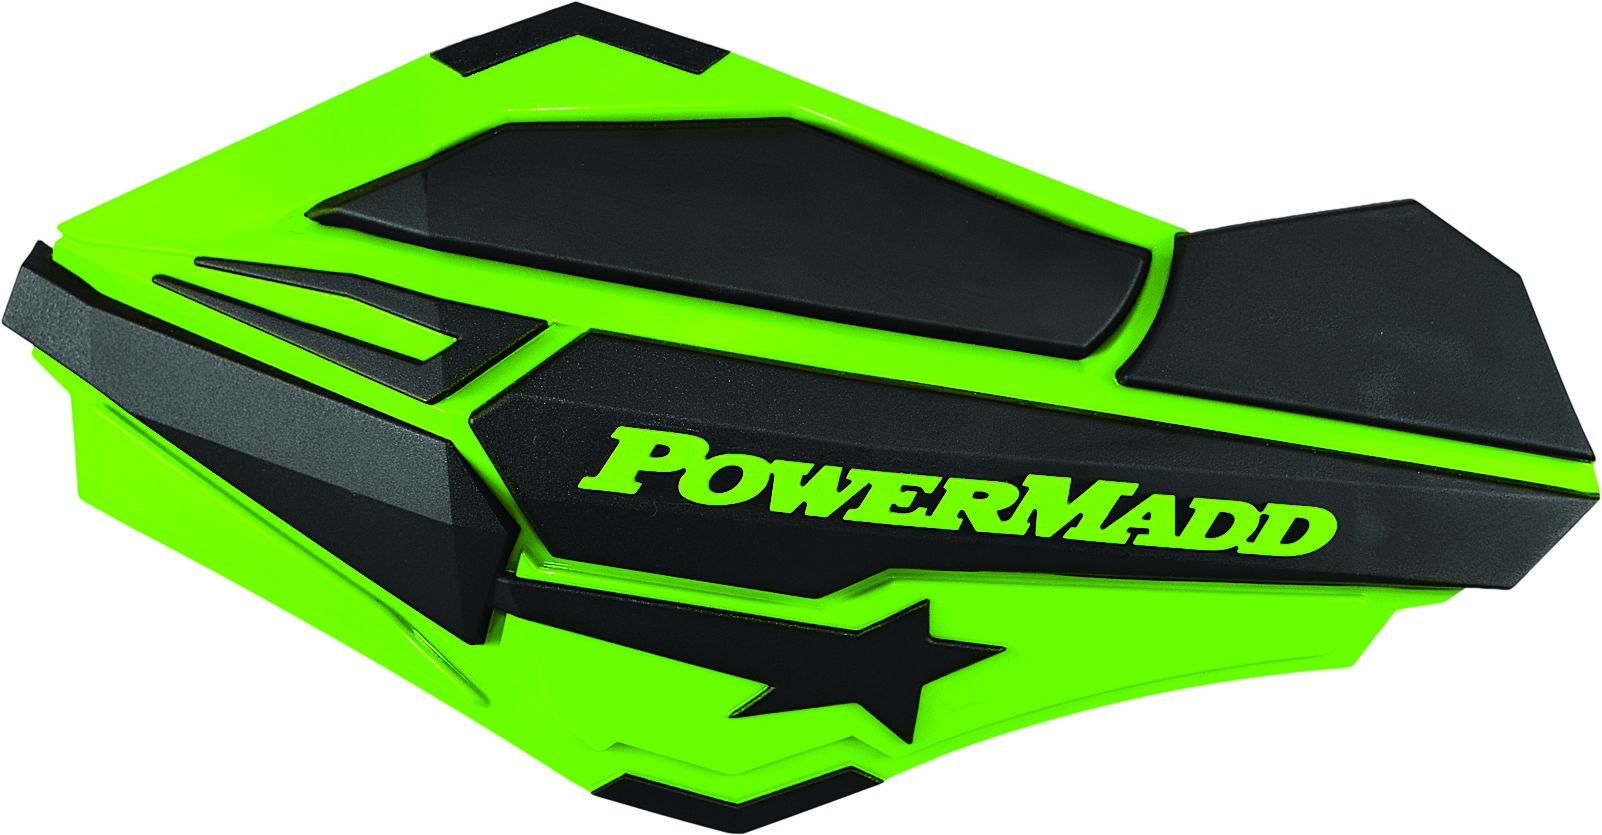 Sentinal Handguards (Green/Black)